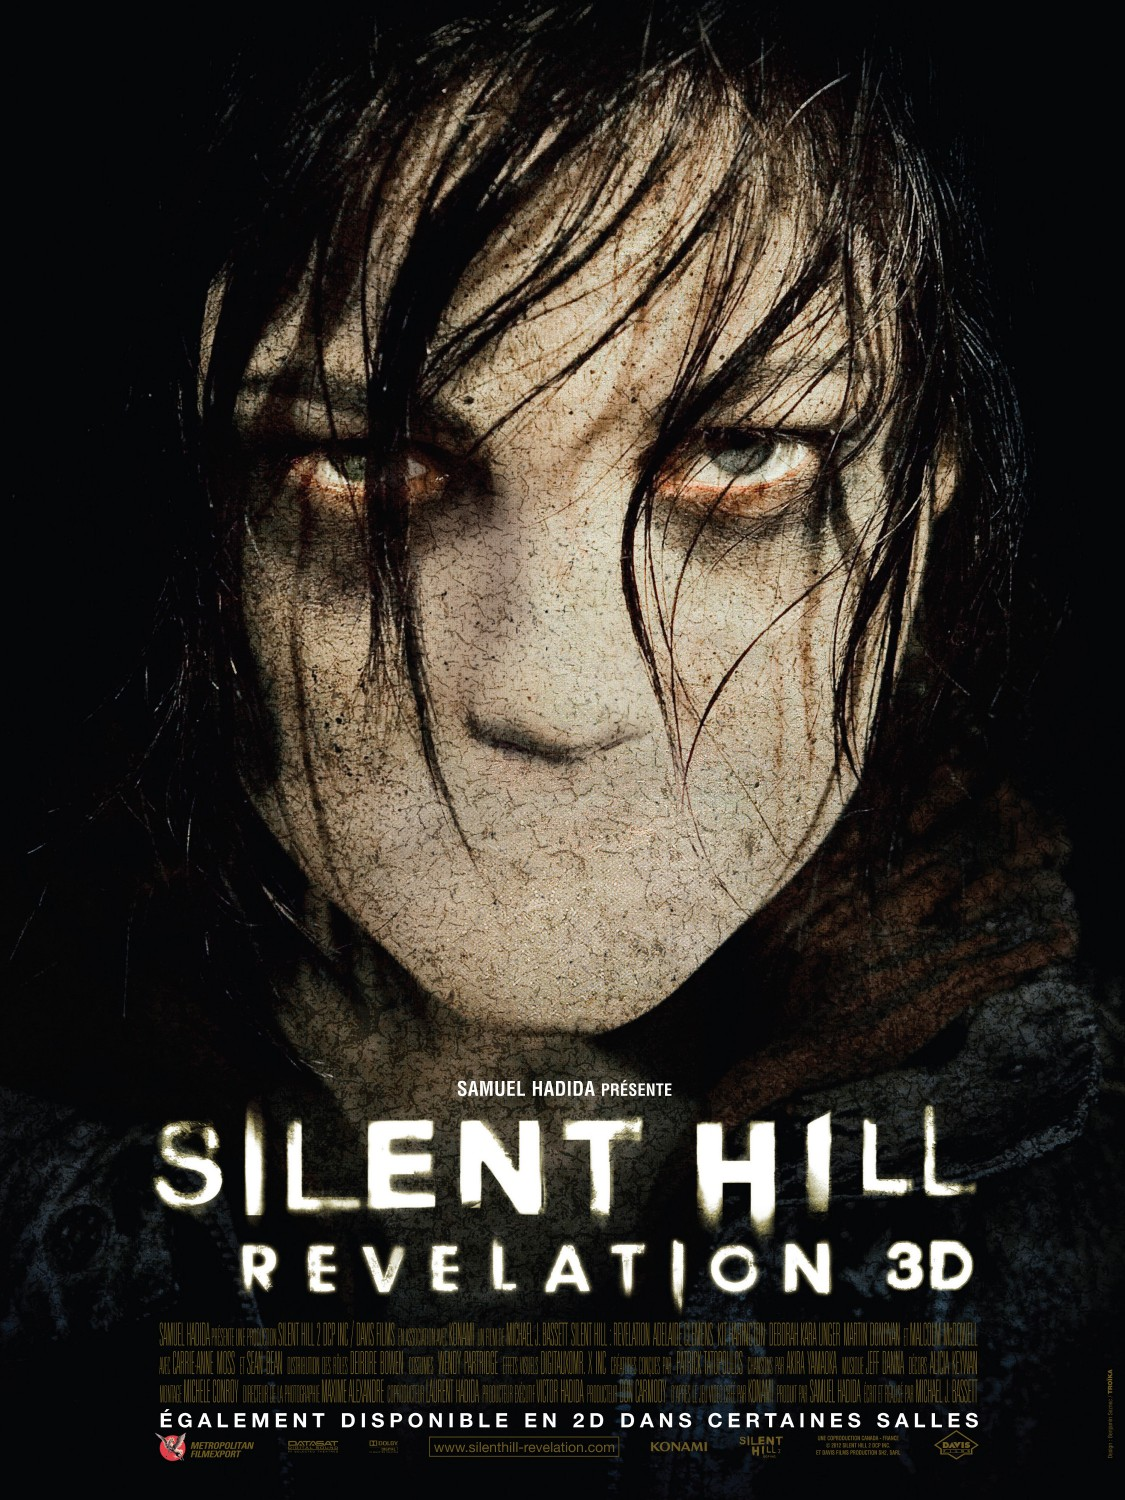 Silent Hill: Revelation (2012) - Directed by: M.J. BassettStarring: Adelaide Clemens, Kit Harington, Sean Bean, Carrie-Anne MossRated: R for Violence and Disturbing Images, Some Language and Brief NudityRunning Time: 1 h 35 mTMM Score: 0.5 stars out of 5STRENGTHS: One or Two Creature DesignsWEAKNESSES: Quite Literally Everything Else